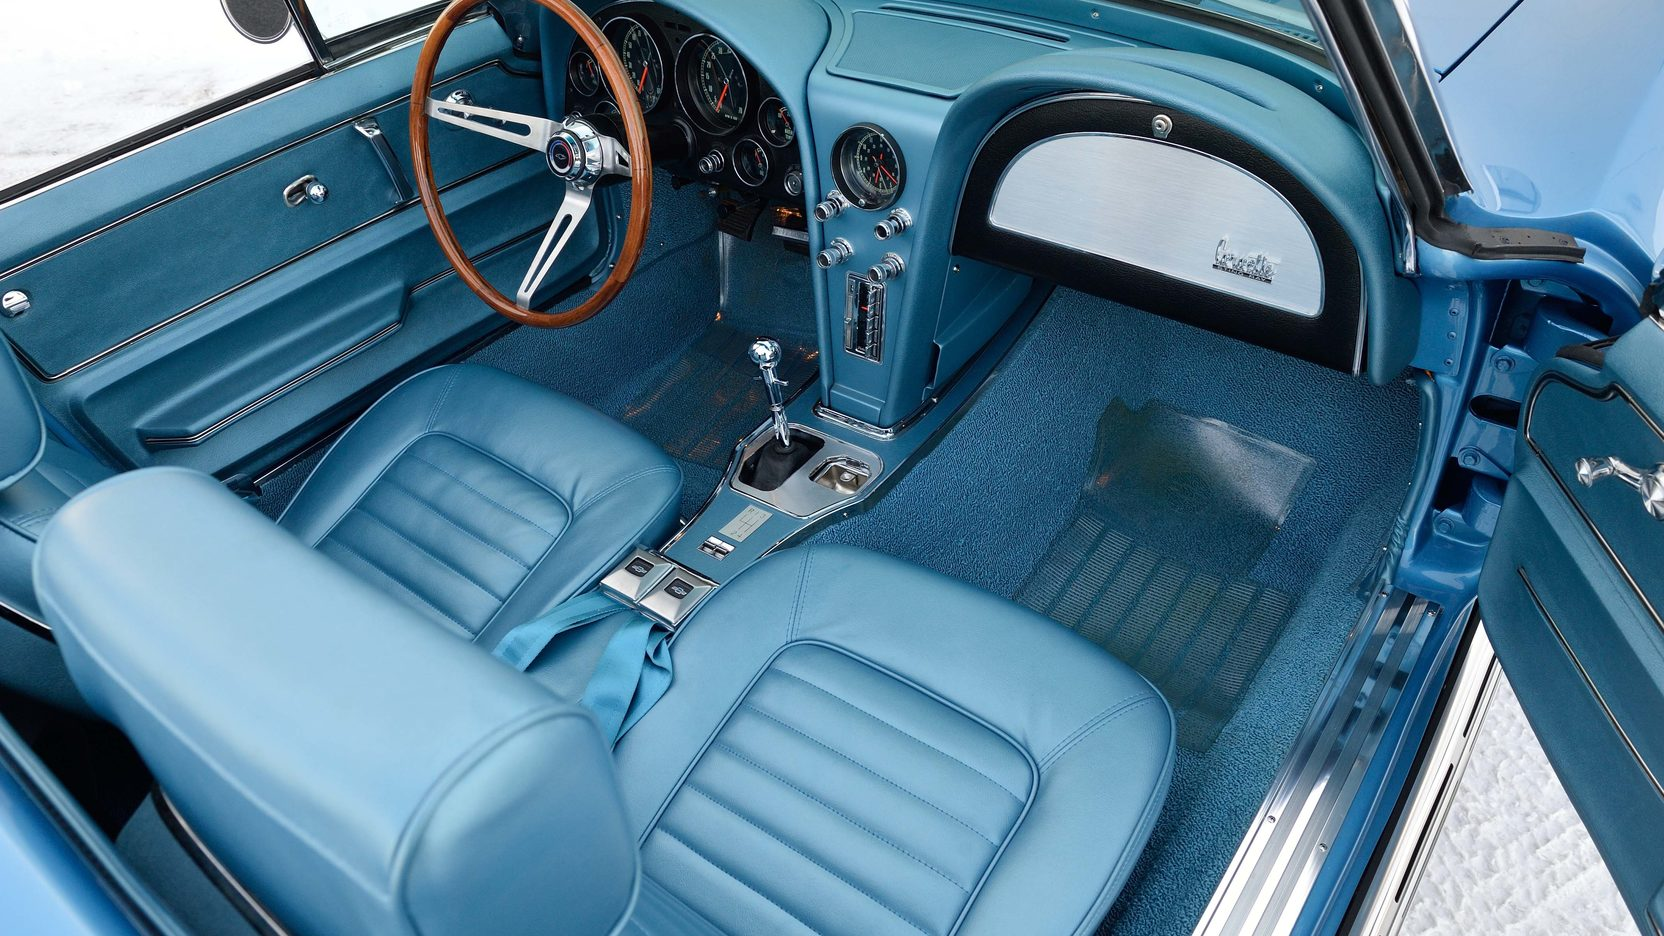 1966 Chevrolet Corvette interior